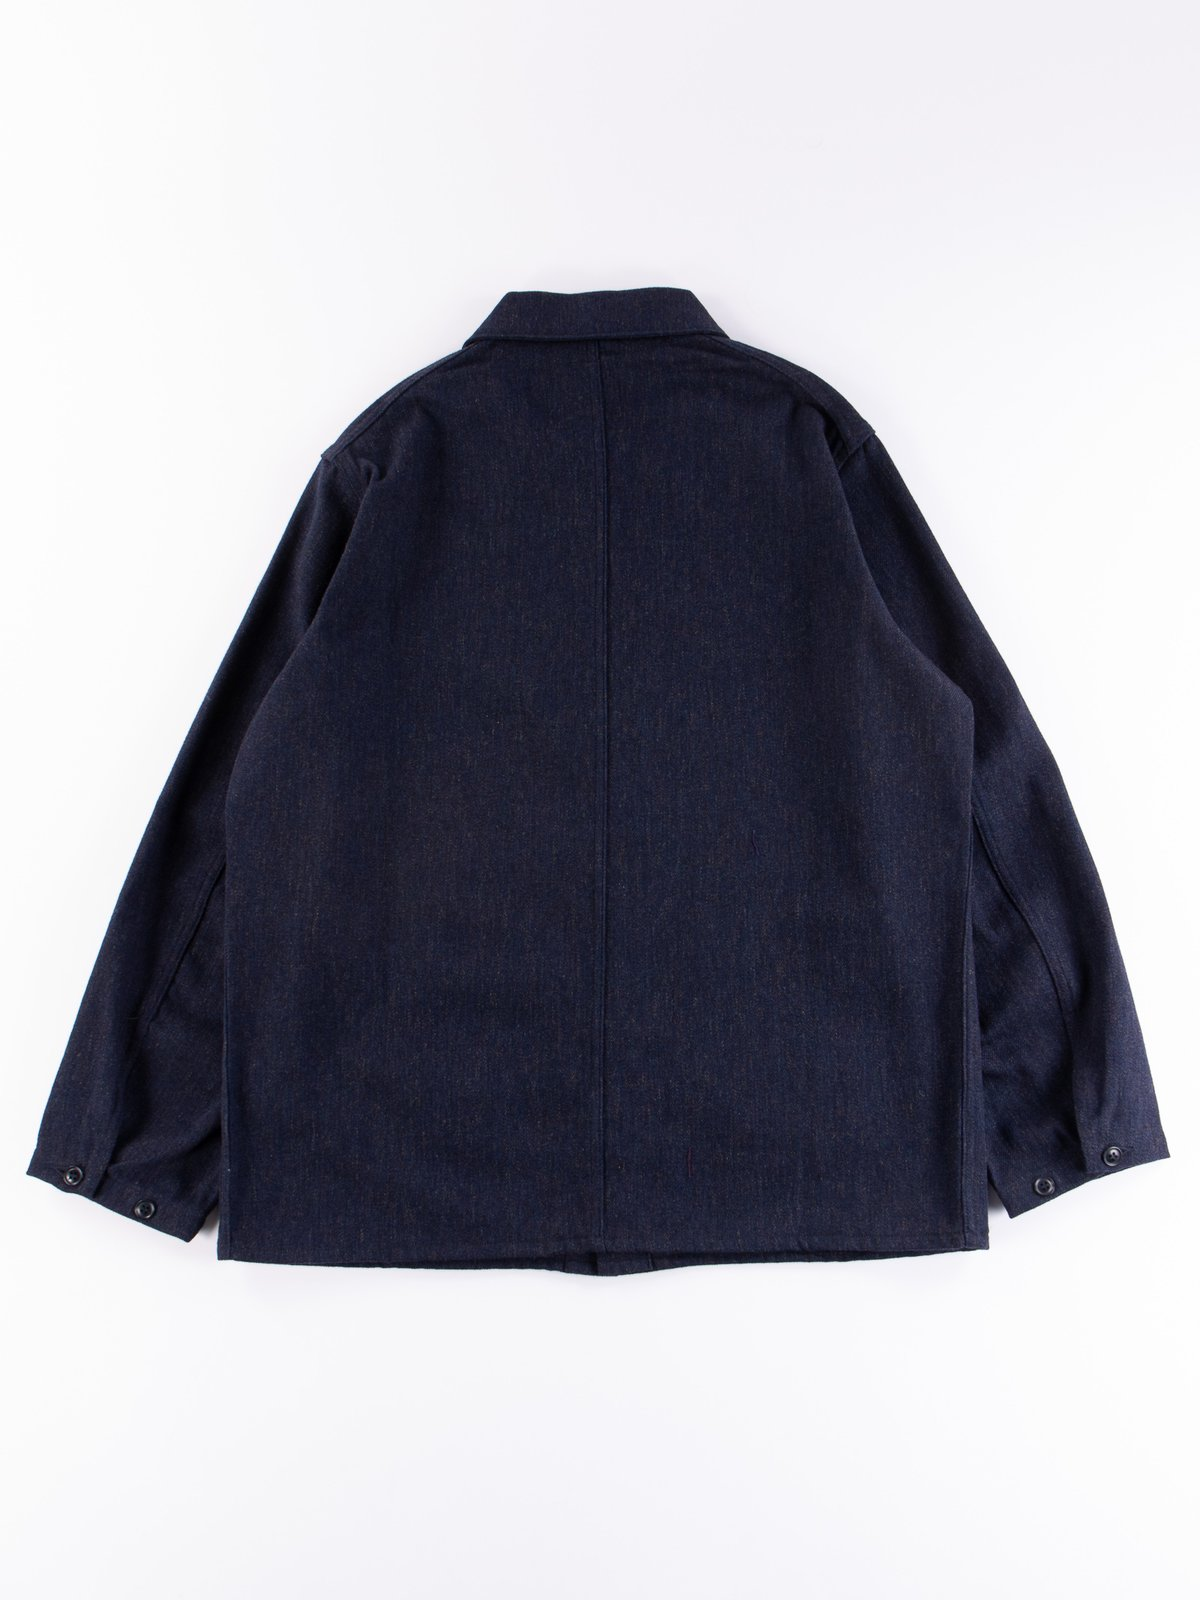 Navy Wool/Cotton Serge D.N Coverall - Image 4